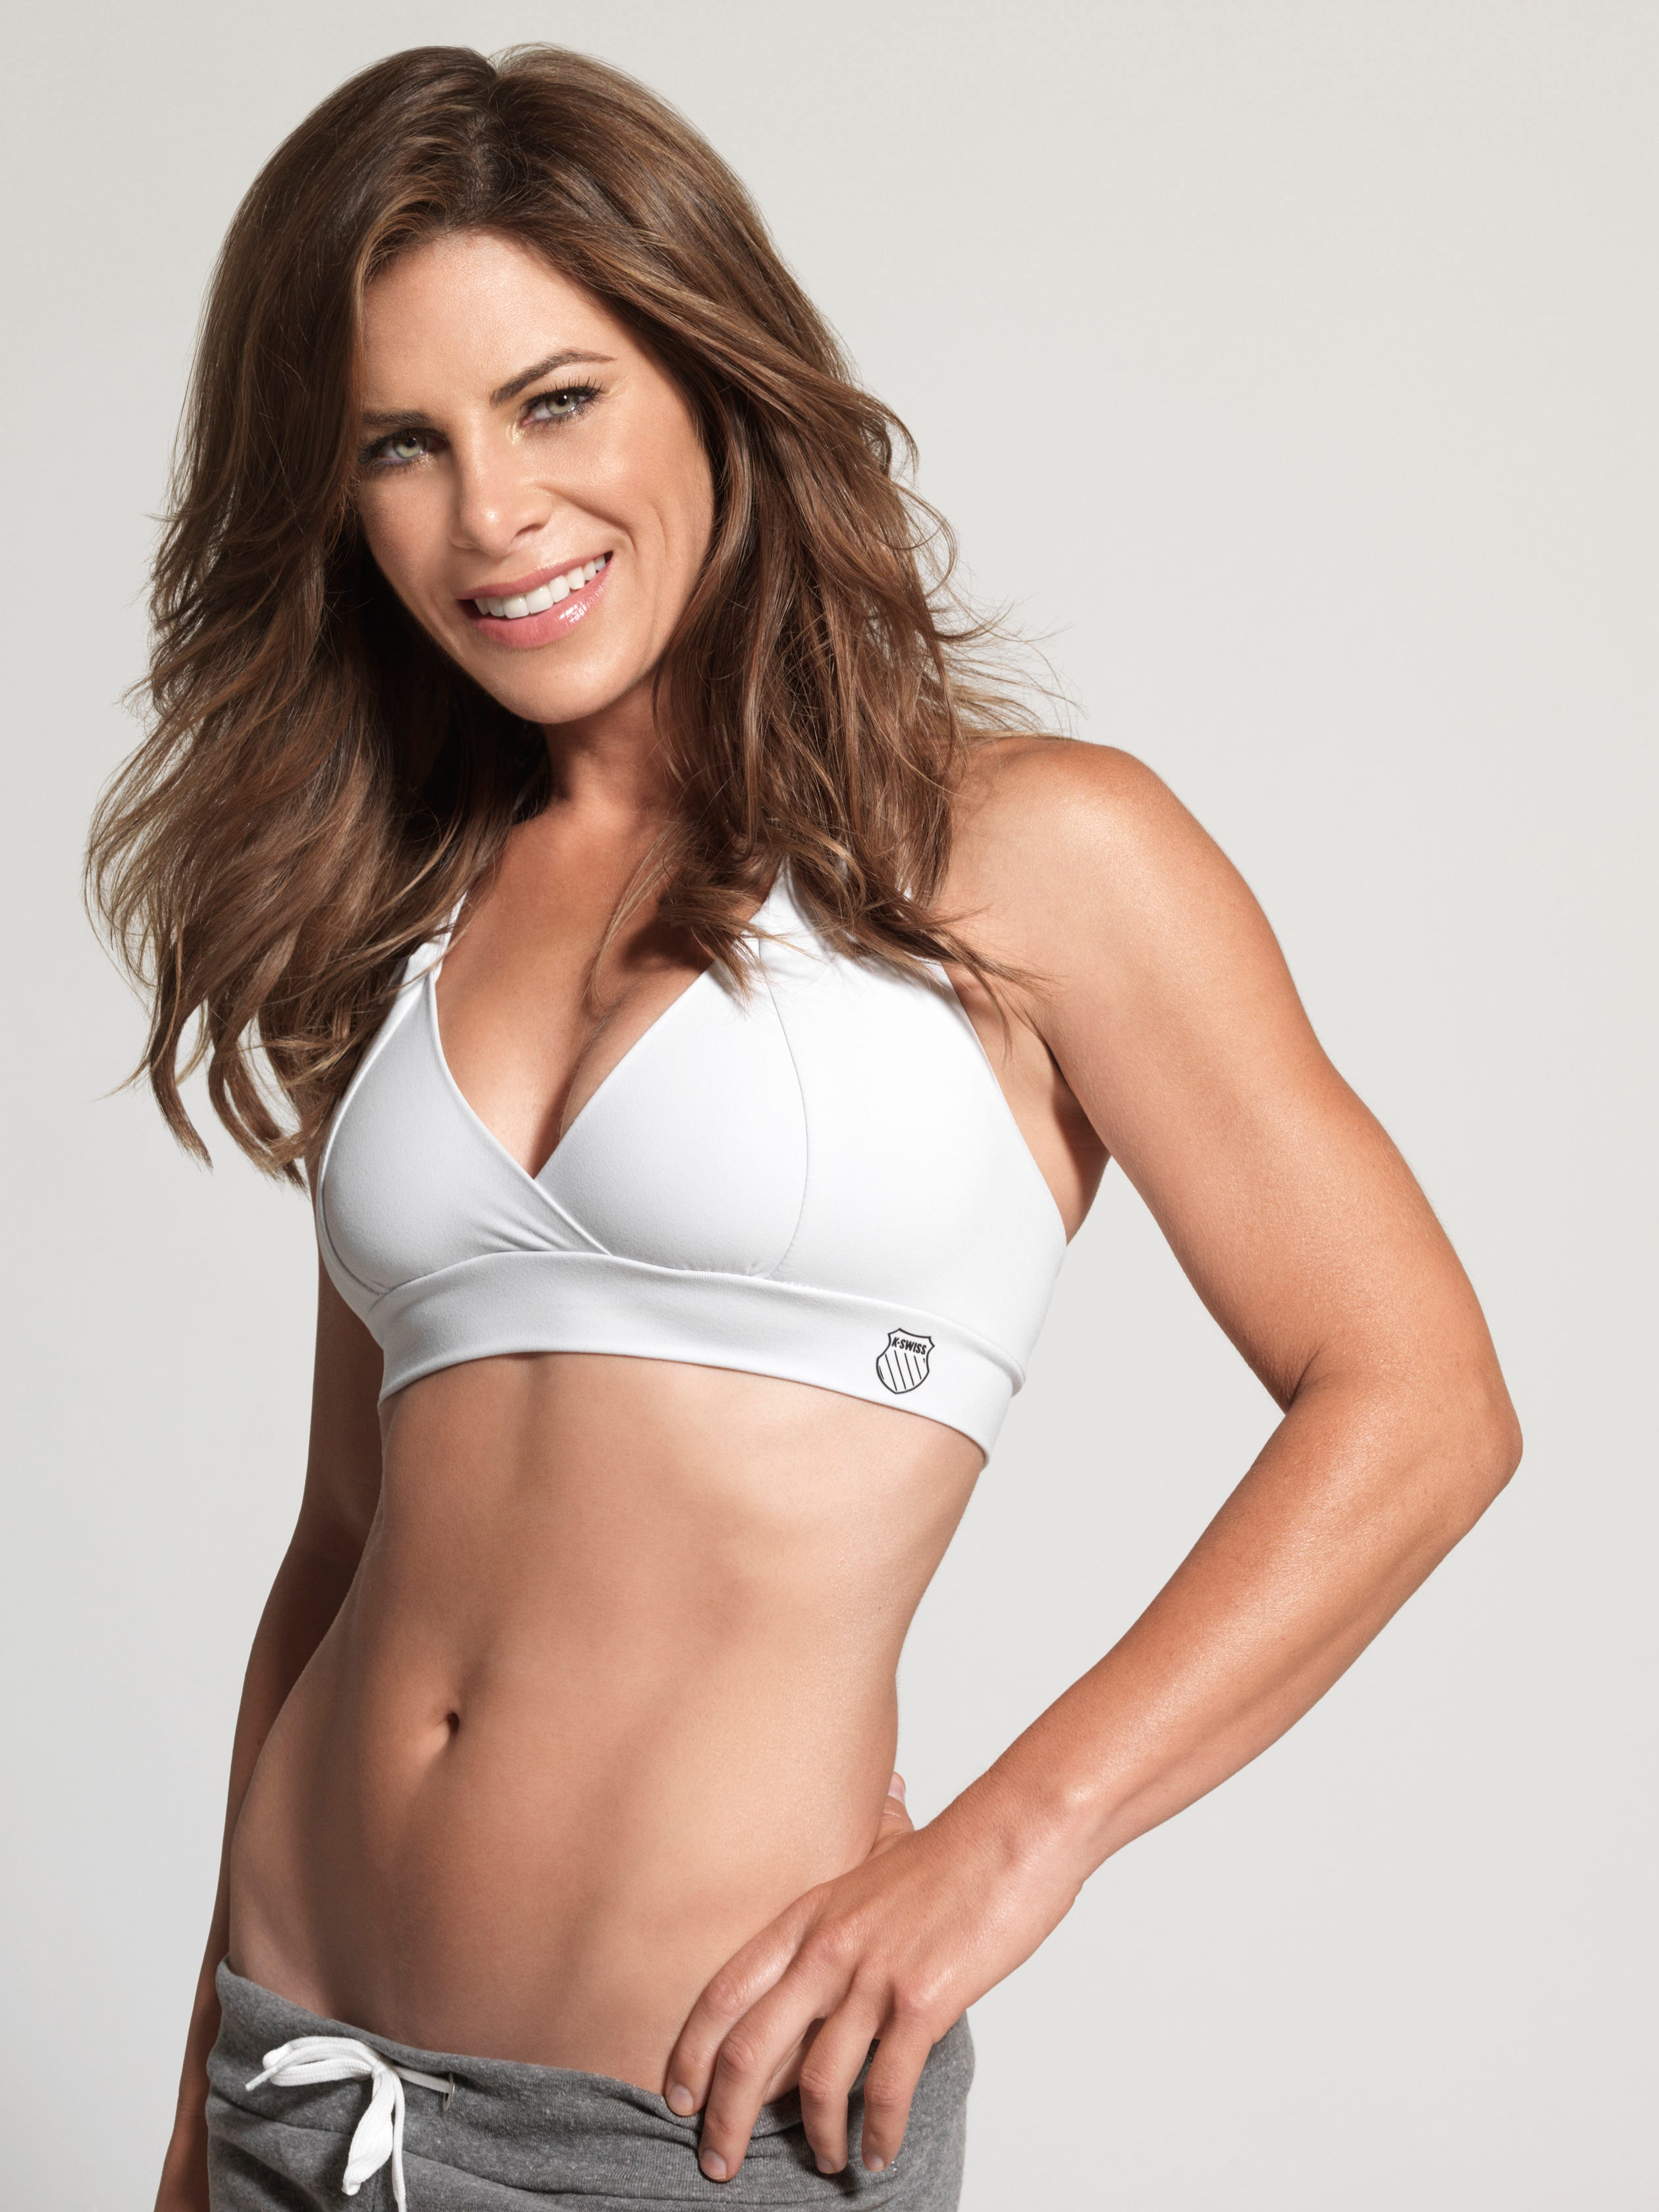 Jillian Michaels slams the keto diet: 'Why would anybody think this is a good idea?'